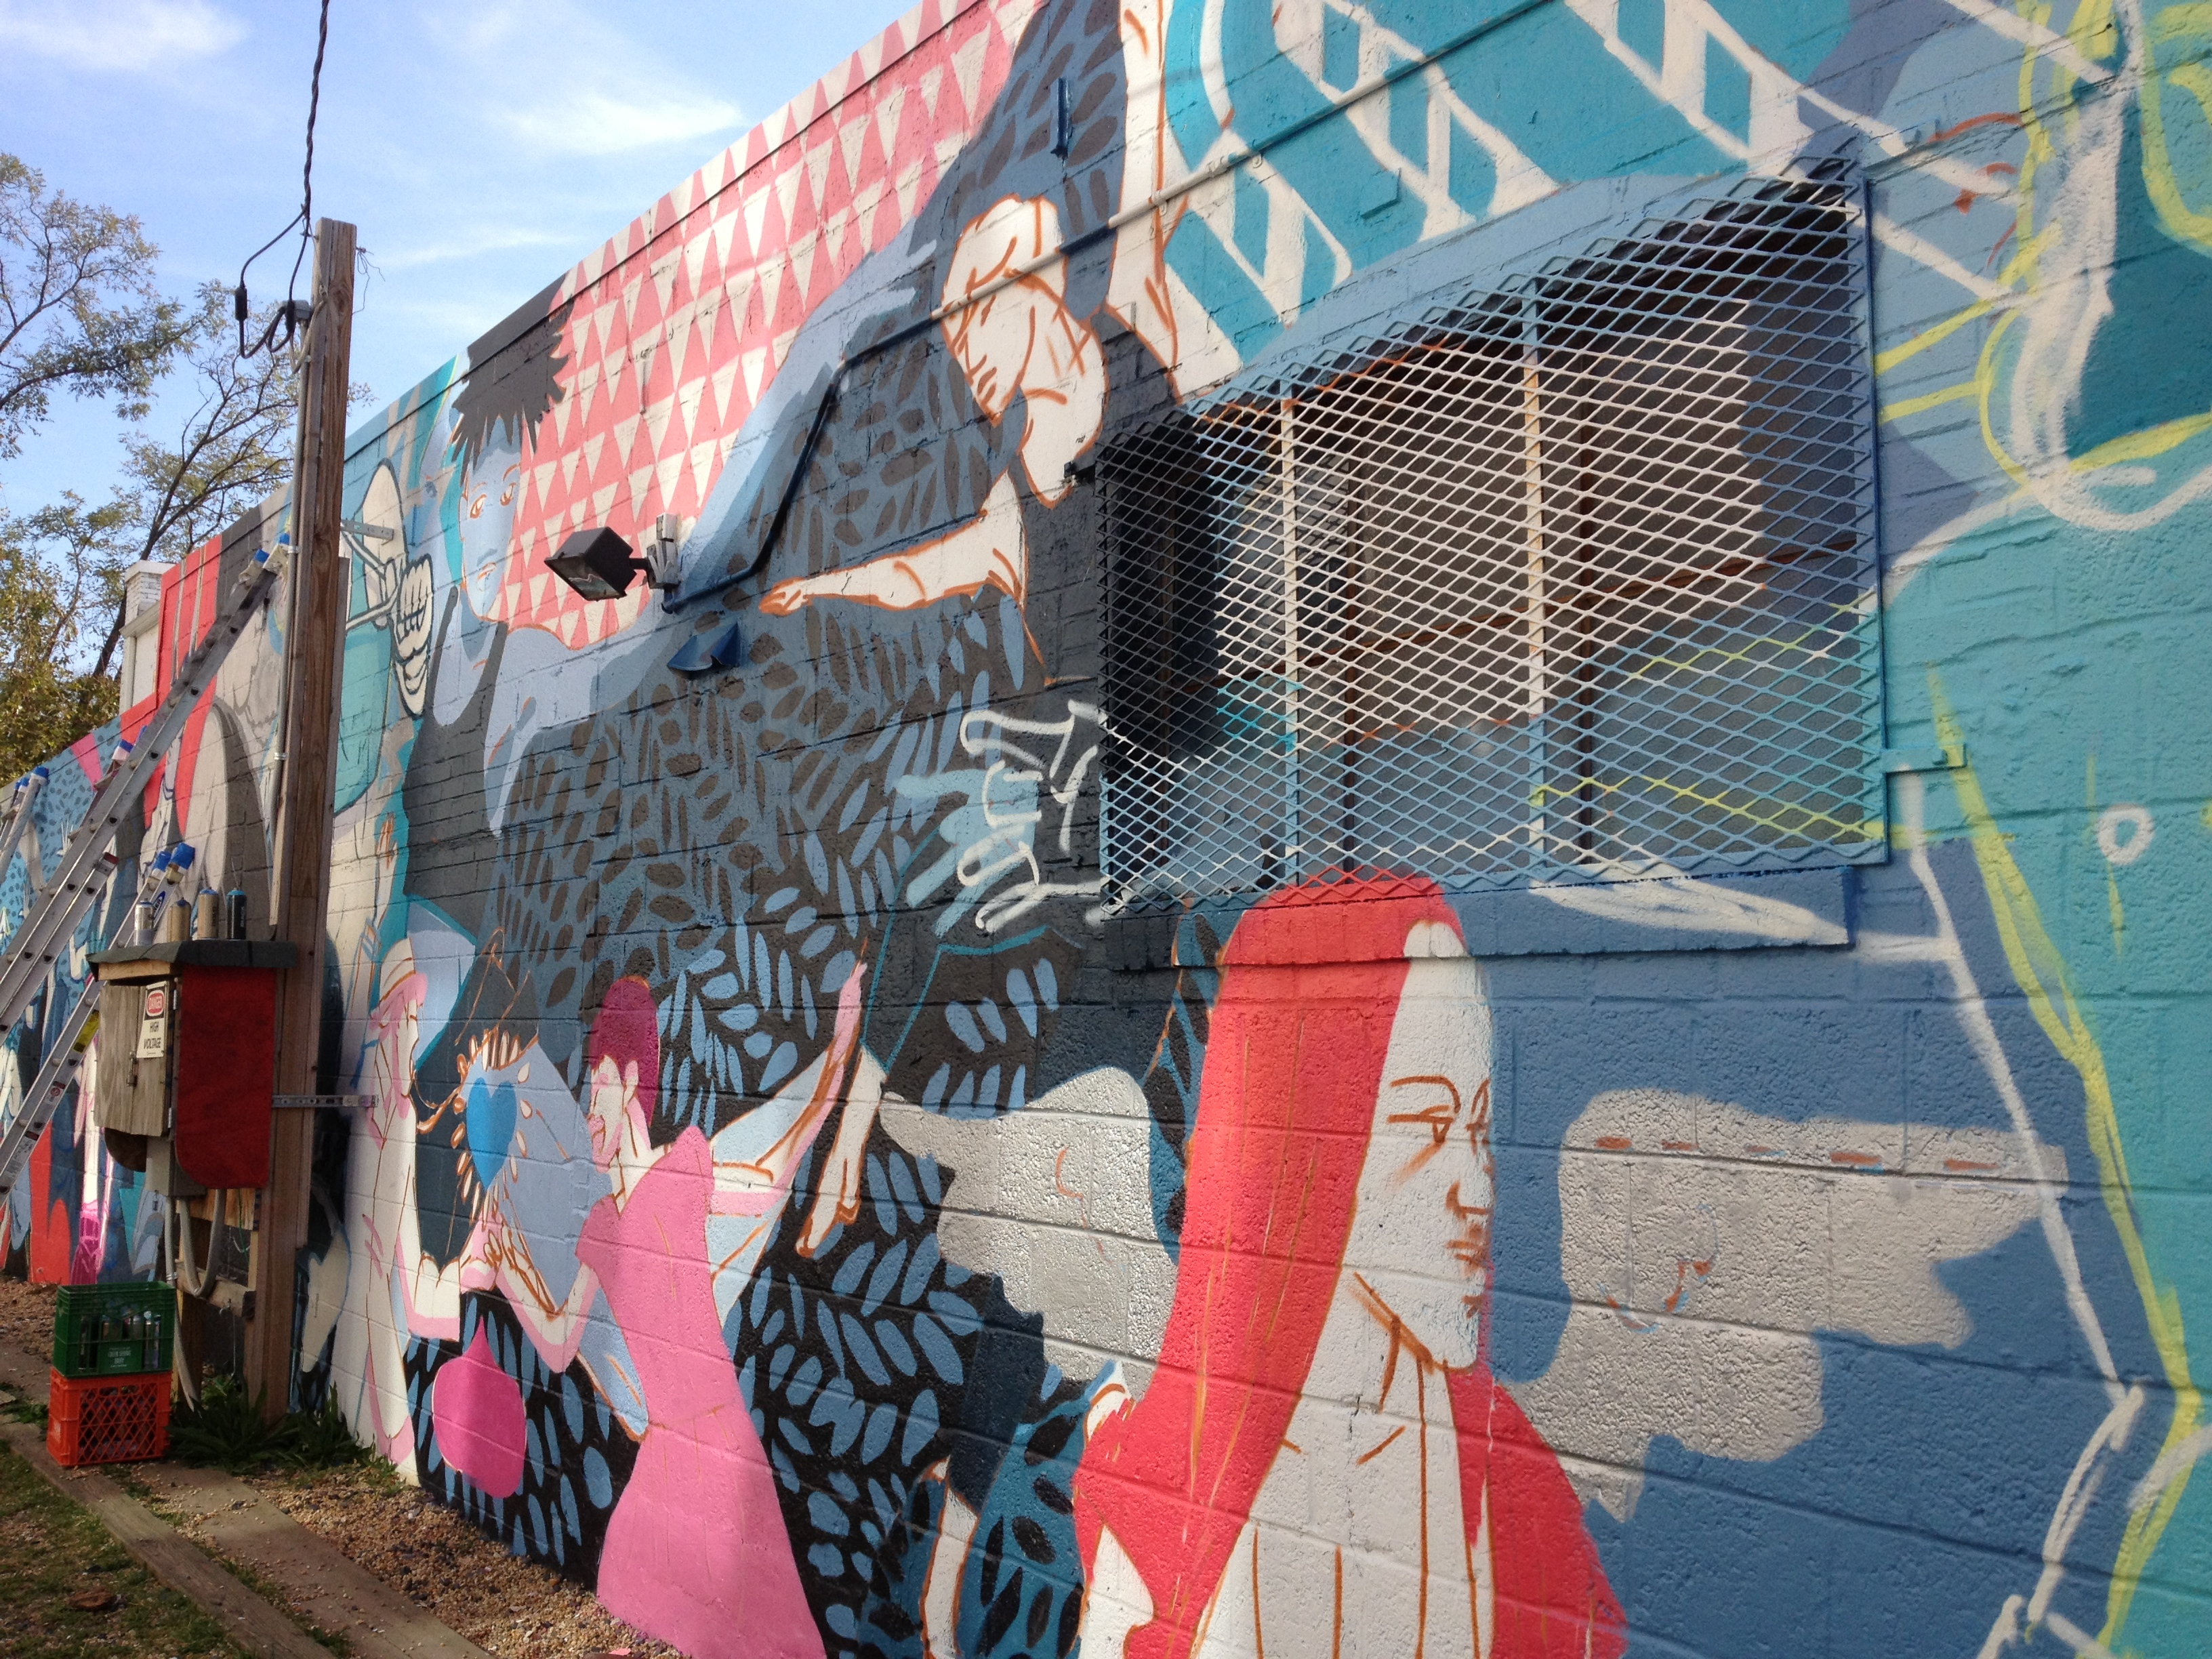 dance-place-mural-002